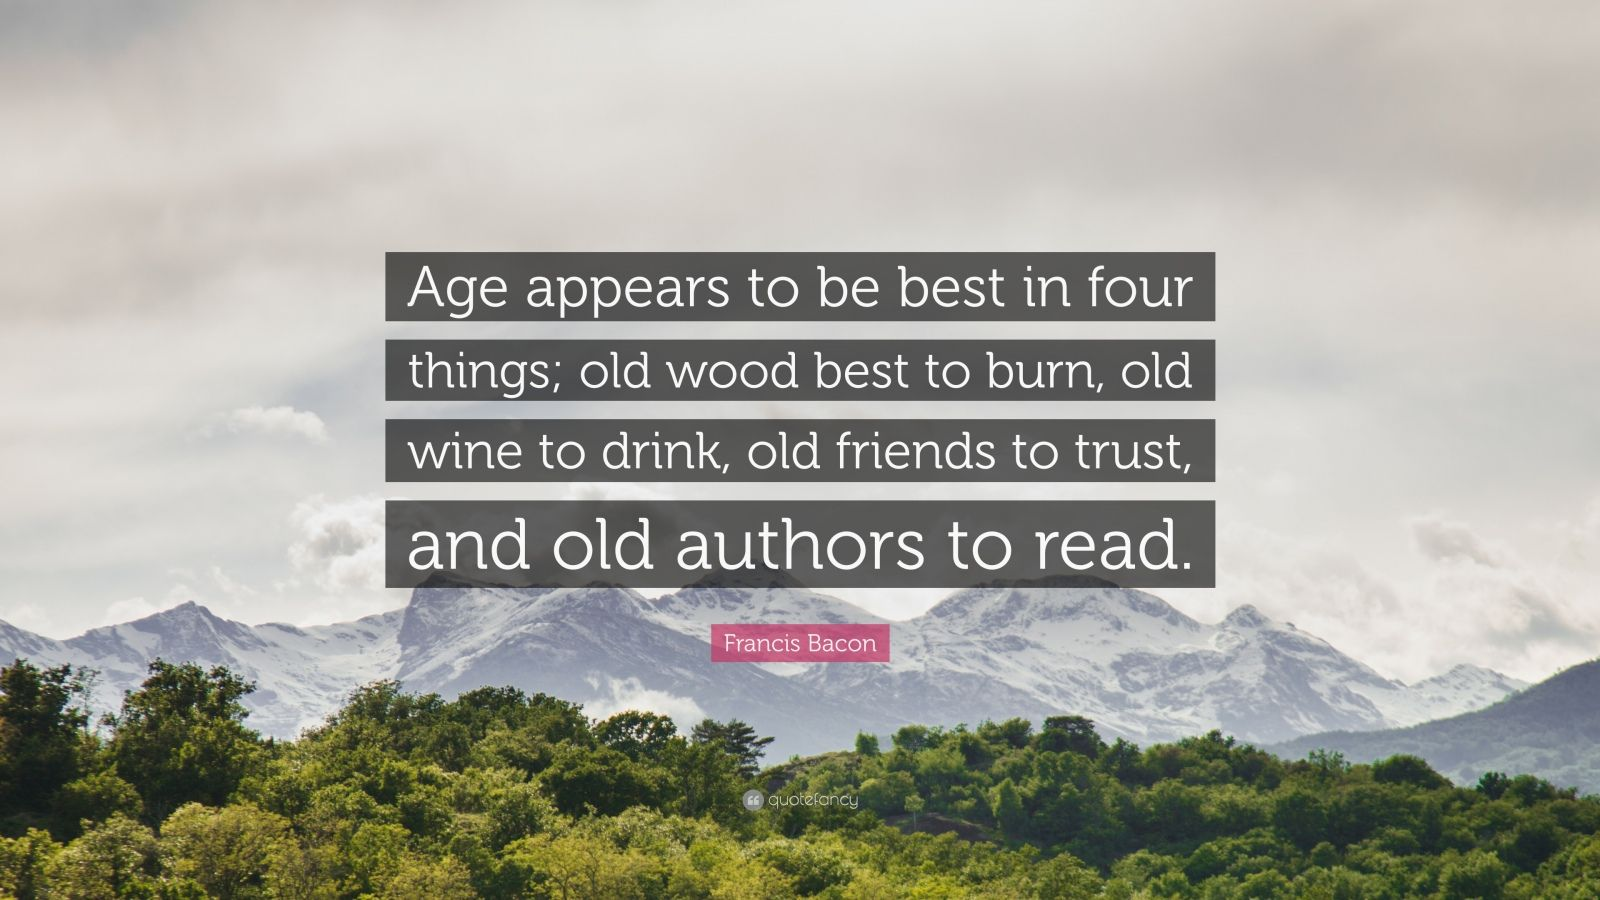 """Francis Bacon Quote: """"Age appears to be best in four things; old wood best to burn, old wine to drink, old friends to trust, and old authors to read."""""""